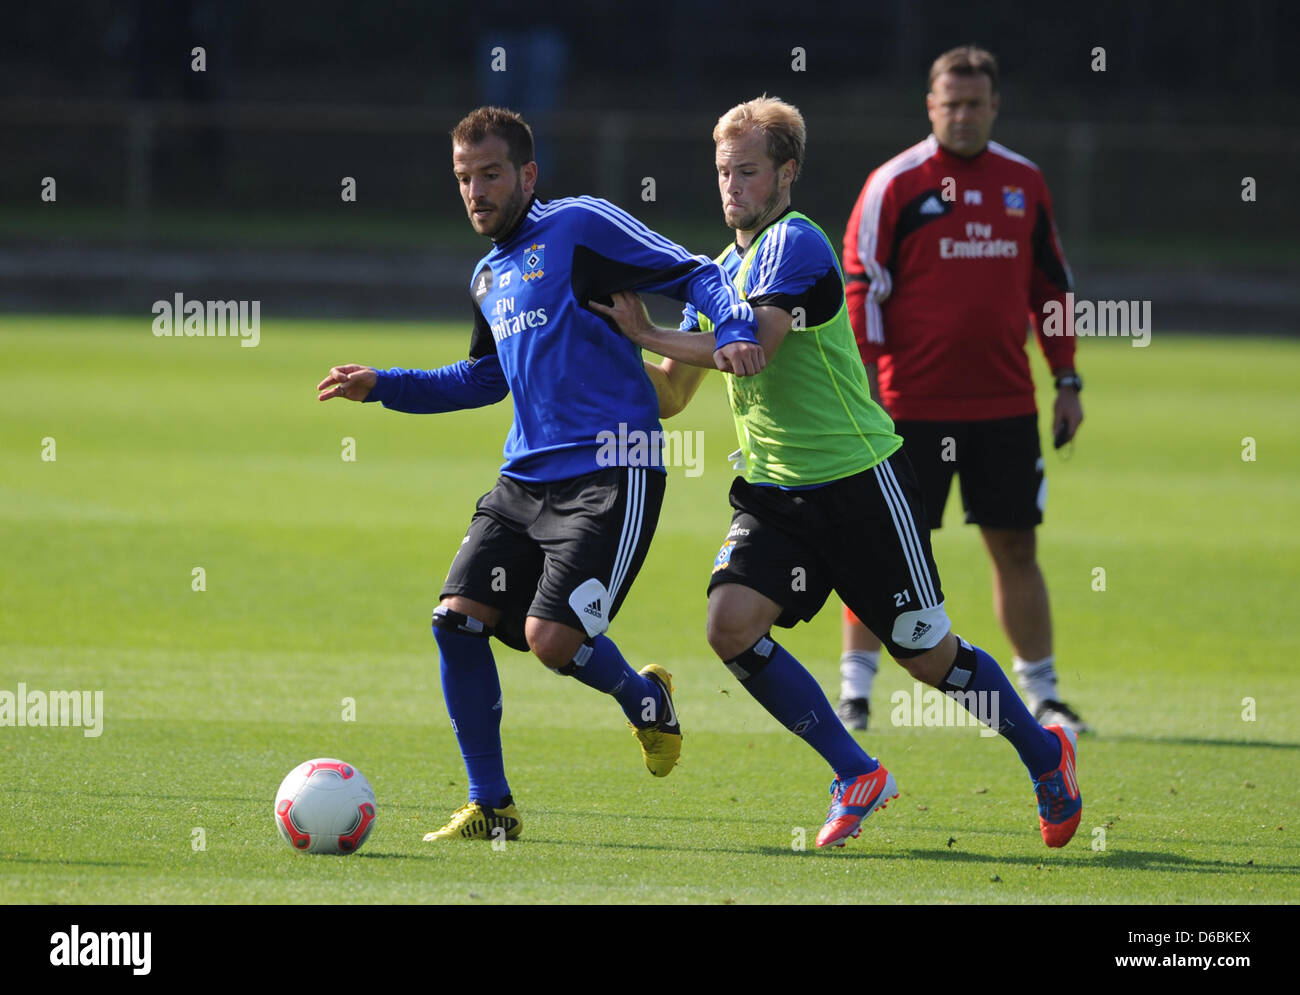 Dutch soccer player Rafael van der Vaart (L) vies for the ball with Maximilian Beister (C) during a training session - Stock Image